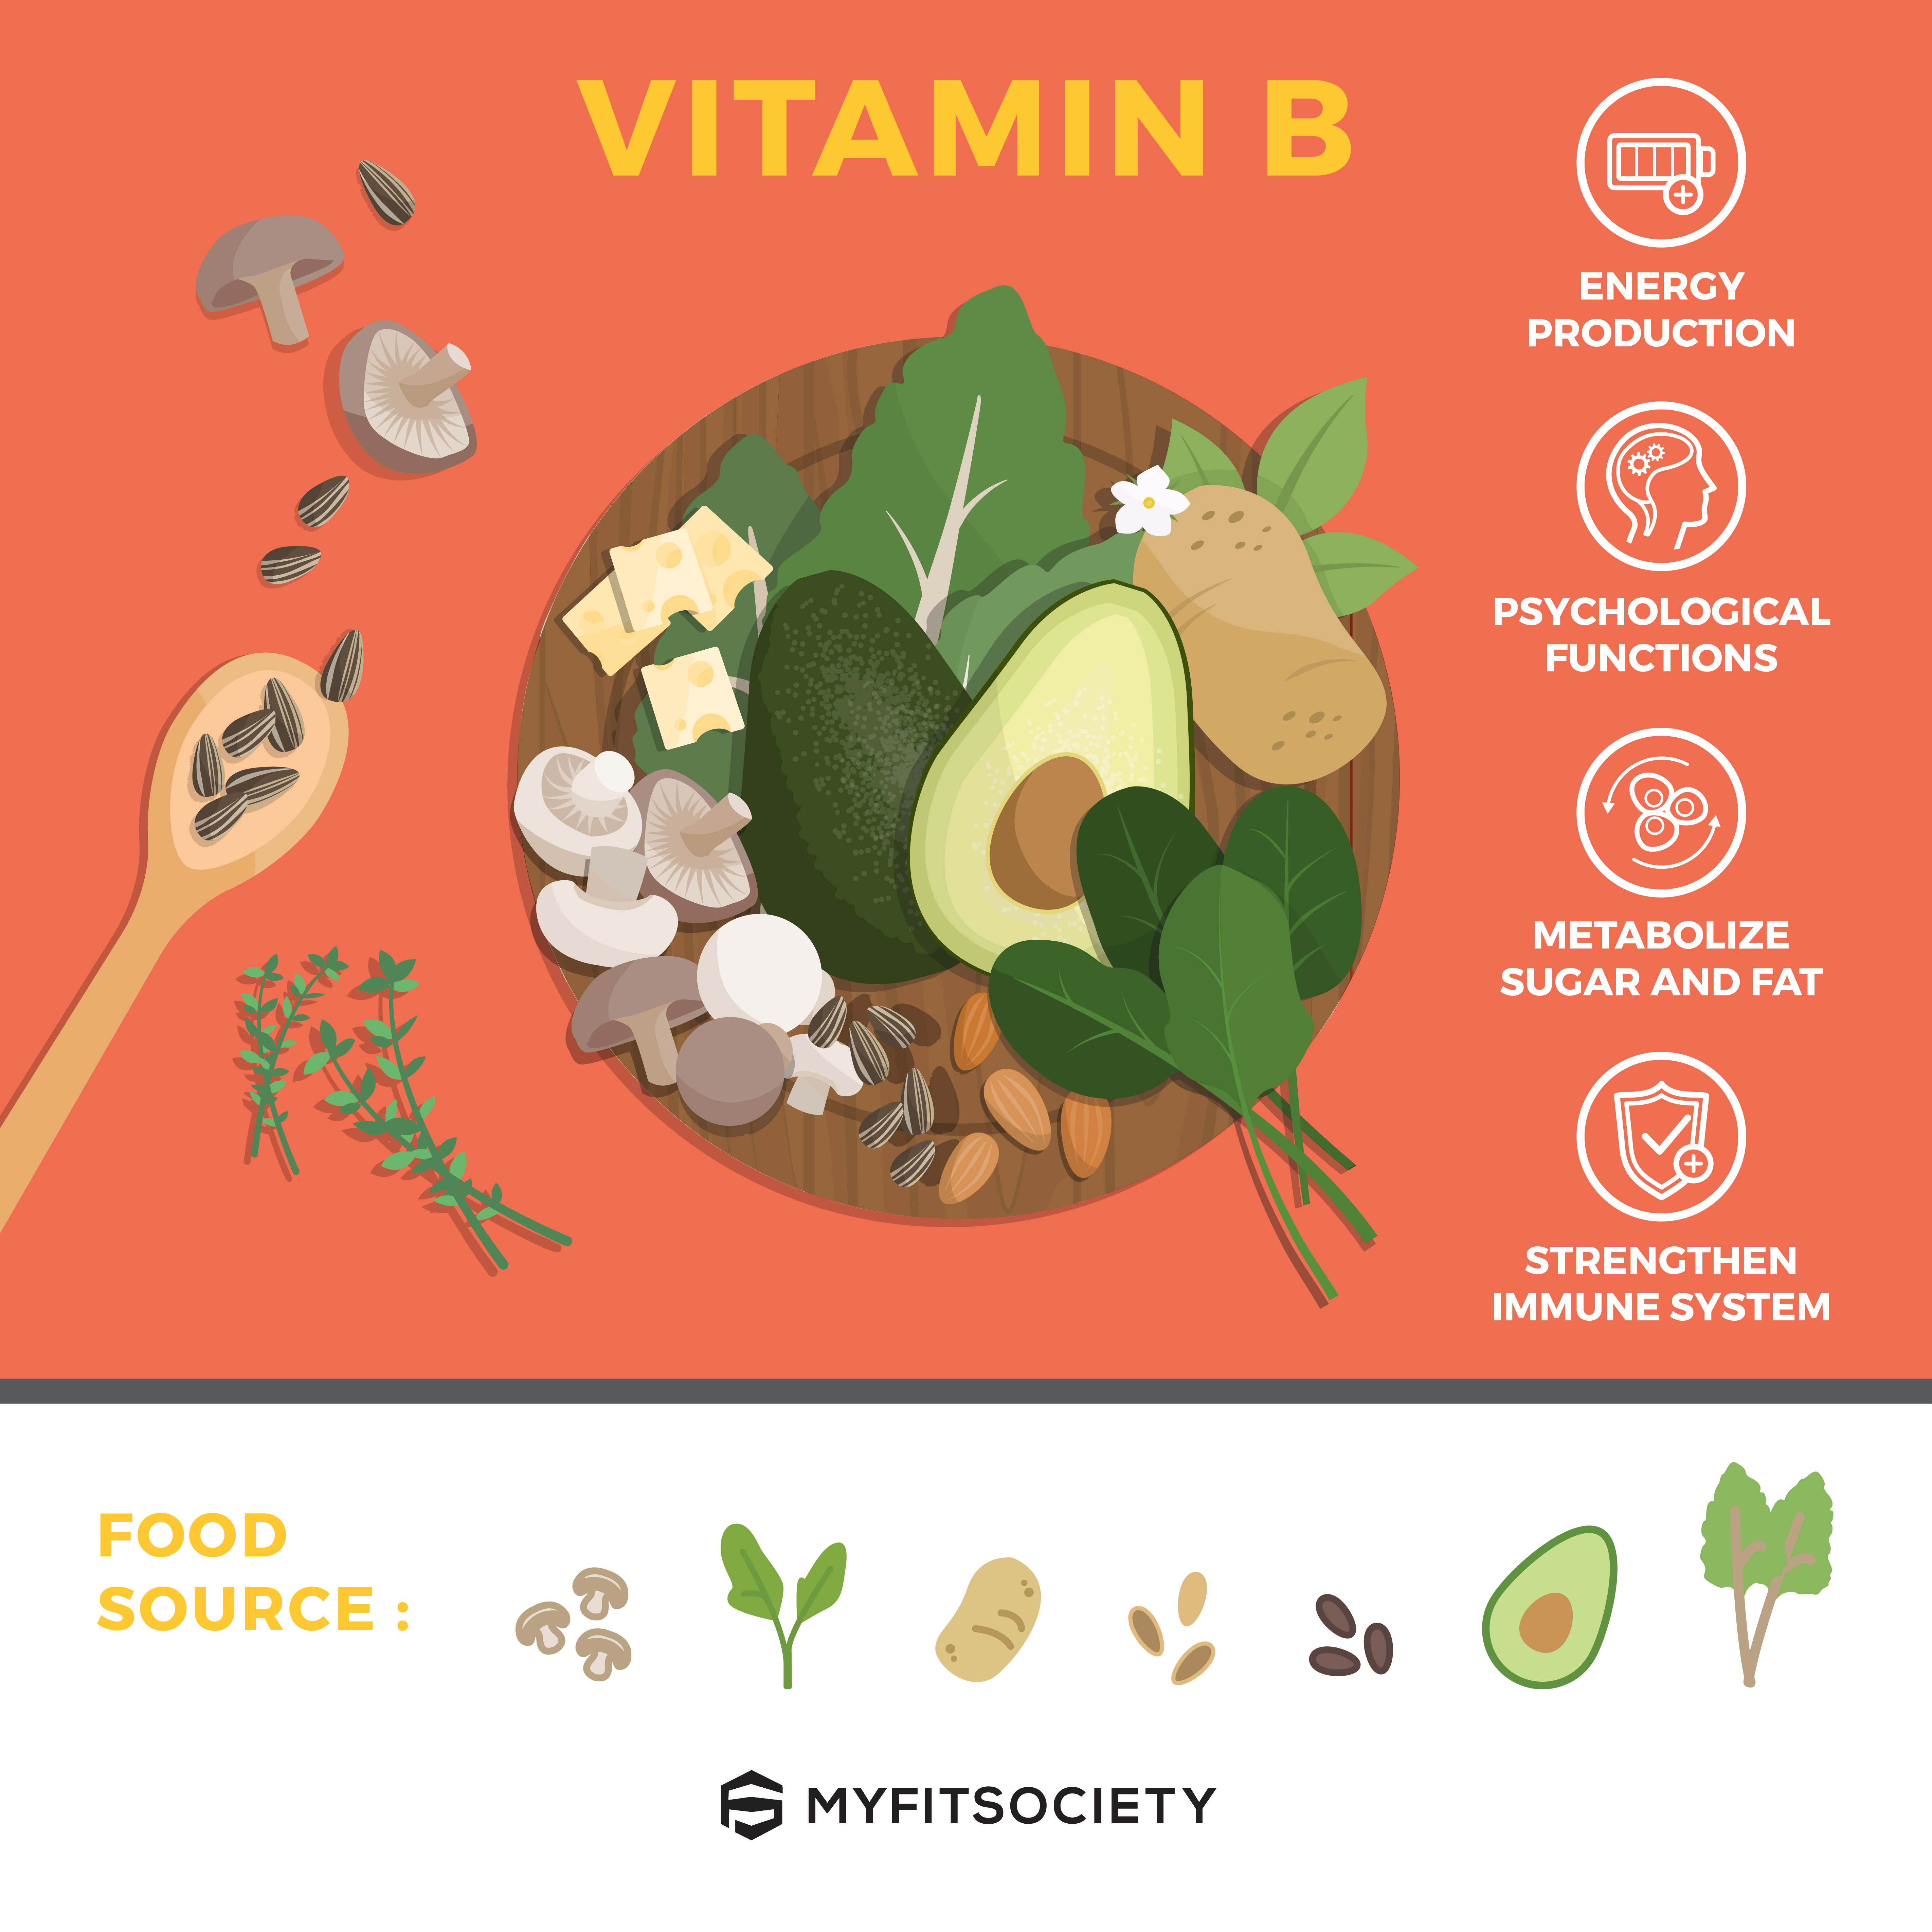 Start off your day on a healthy note with vitamin B rich